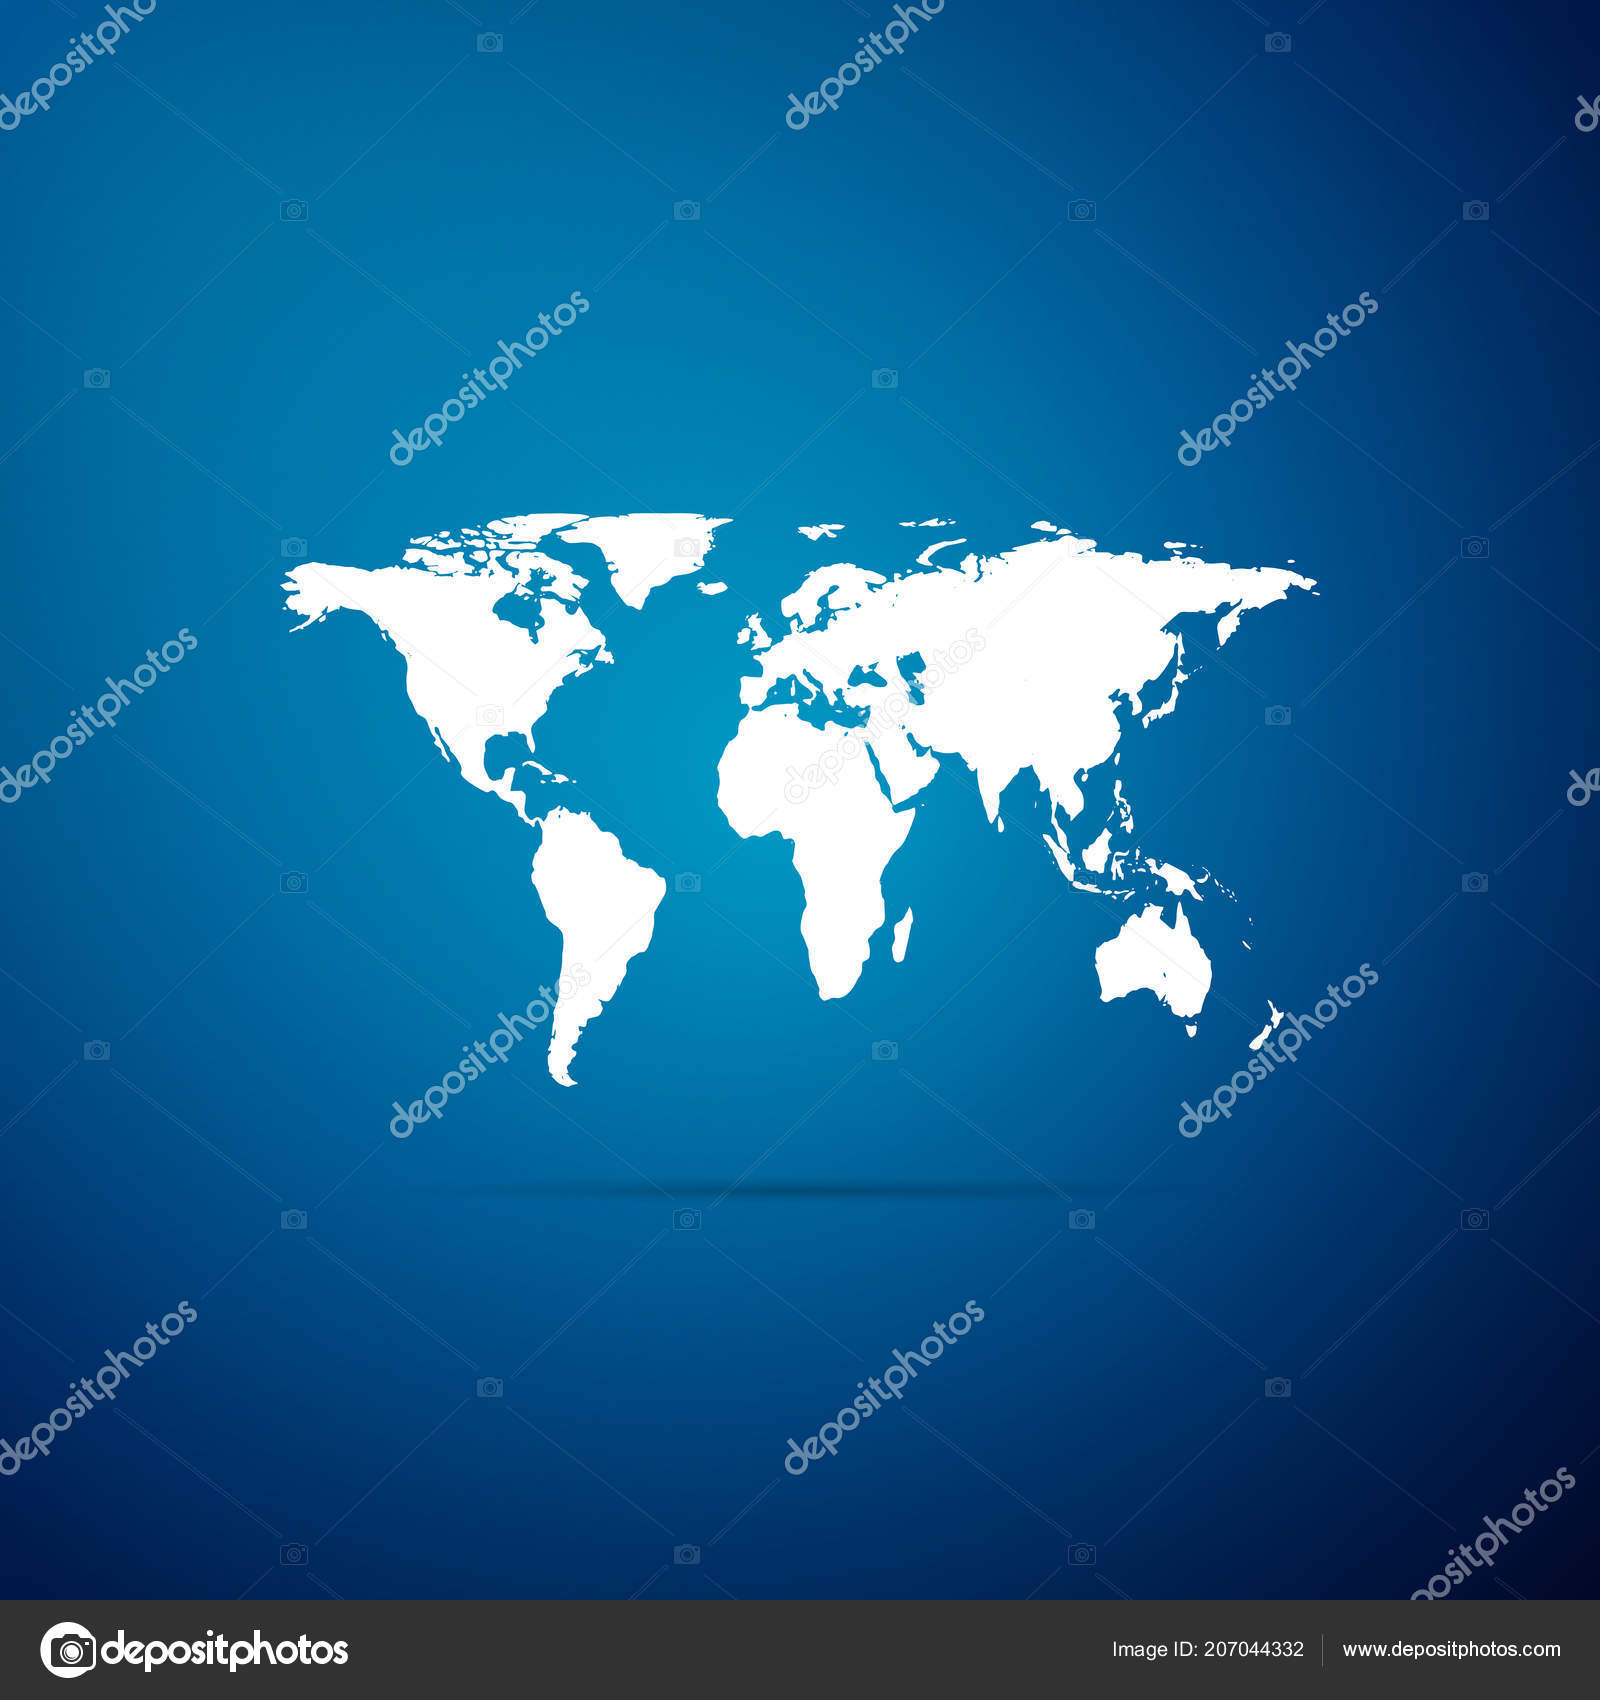 World map icon isolated on blue background flat design vector world map icon isolated on blue background flat design vector illustration stock vector gumiabroncs Image collections